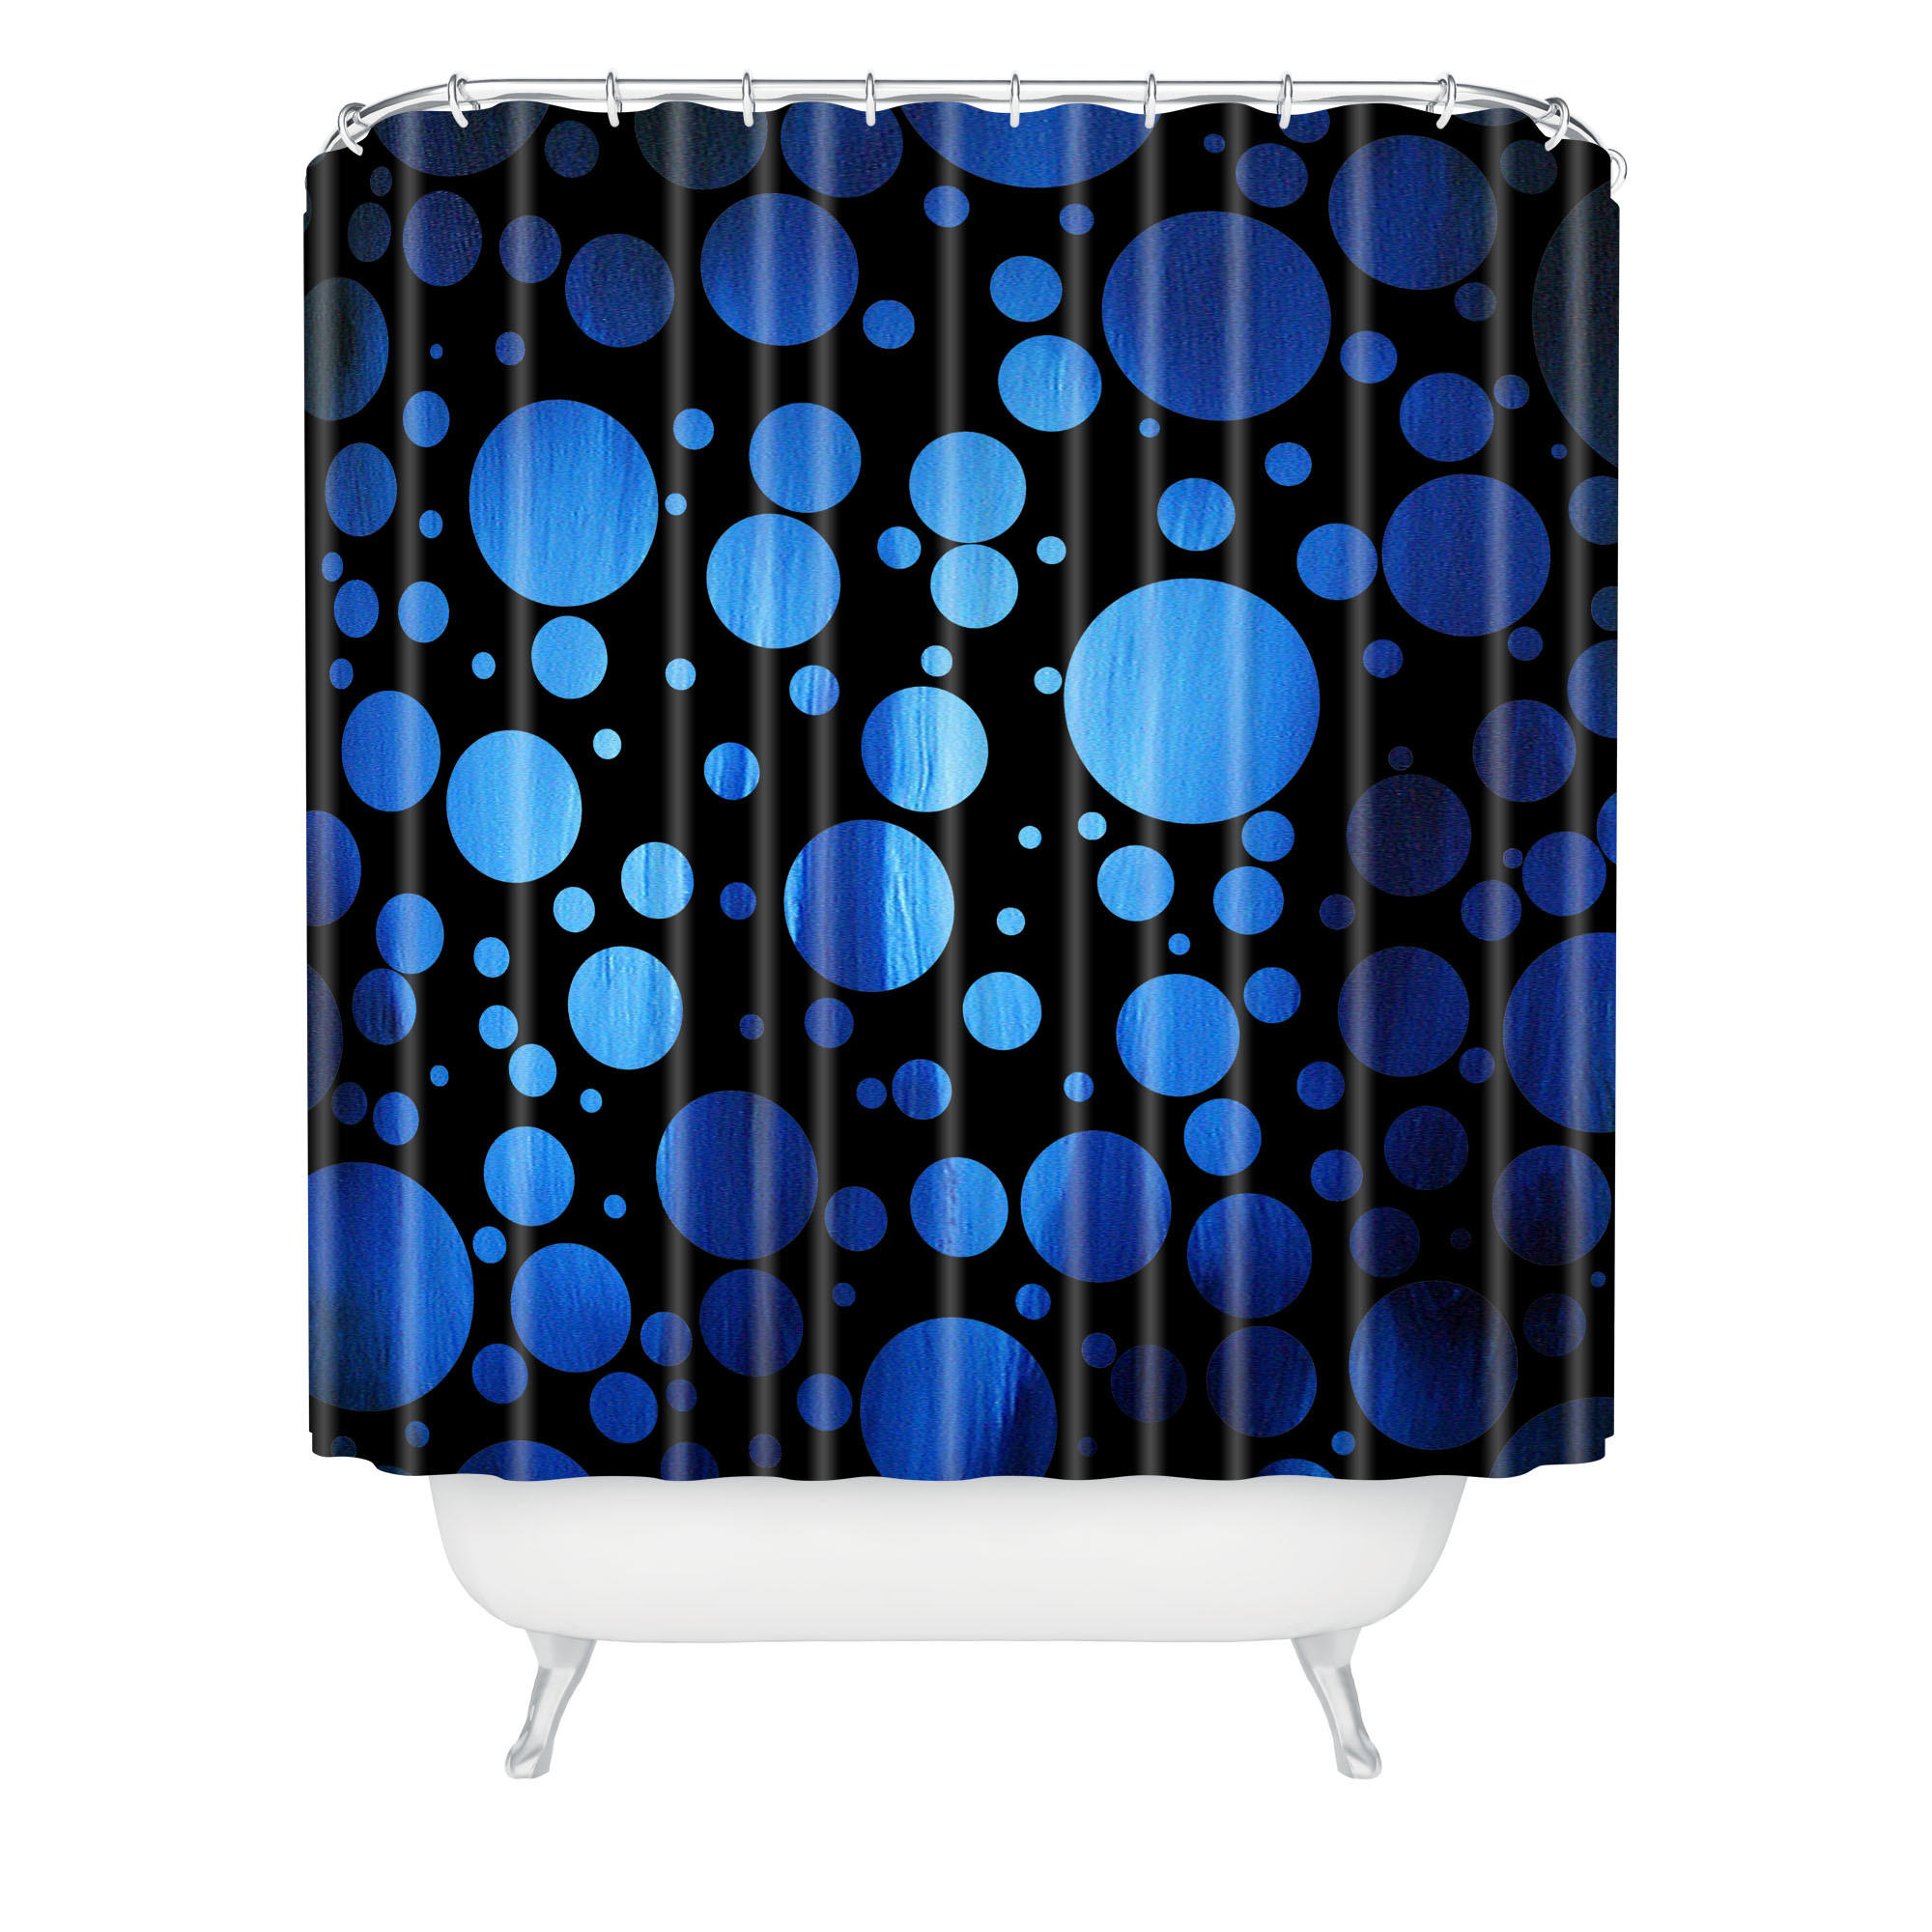 pics photos royal blue polka dot shower curtain jpg